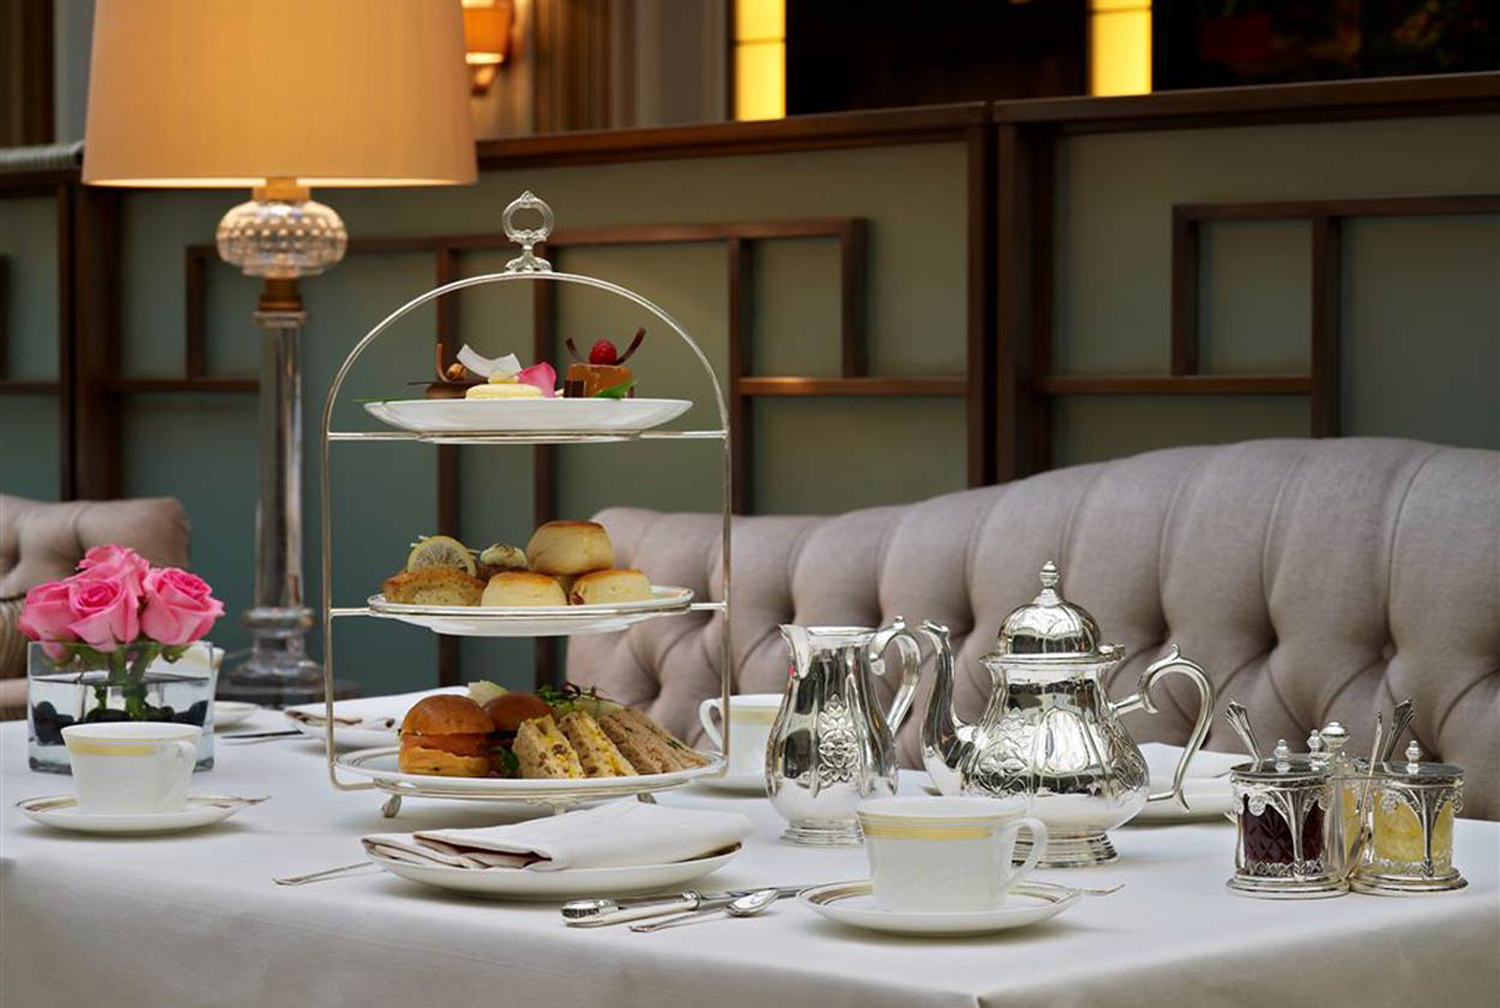 London Fashion Afternoon Tea Hosted by The Luxurious Hotel The Lanesborough & The Fashion house Beulah London